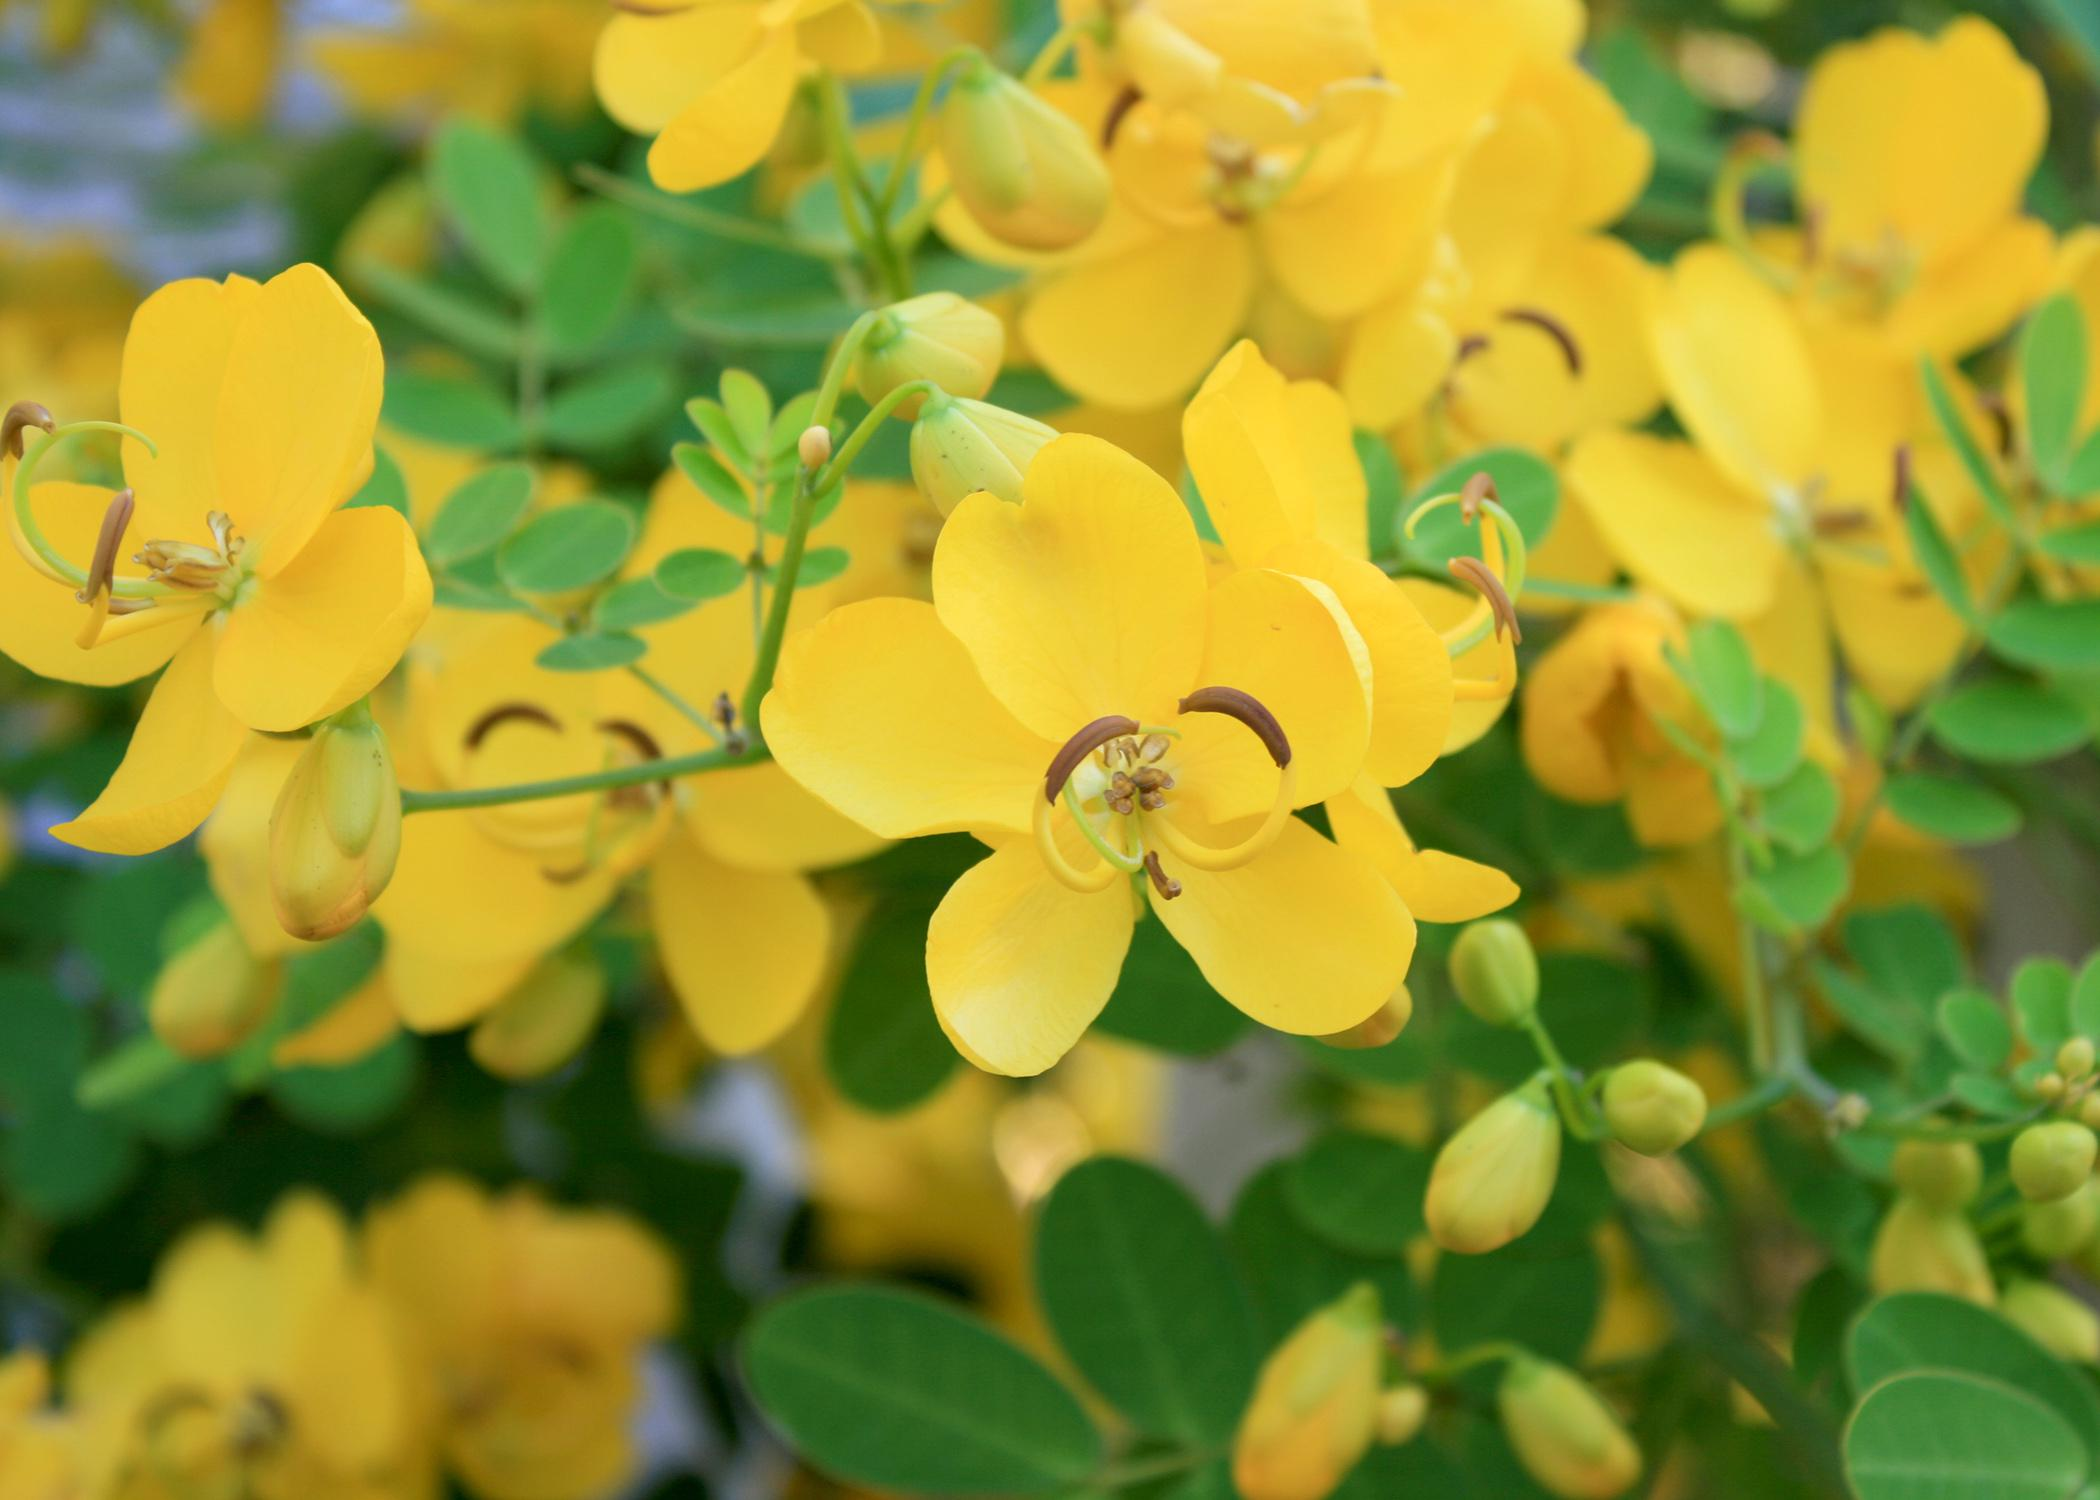 Each spike-like cluster of winter cassia's golden yellow flowers has up to 12 individual blossoms. Flowers have five petals, and the curved shapes of the stamens and pistils add landscape interest. (Photo by MSU Extension Service/Gary Bachman)